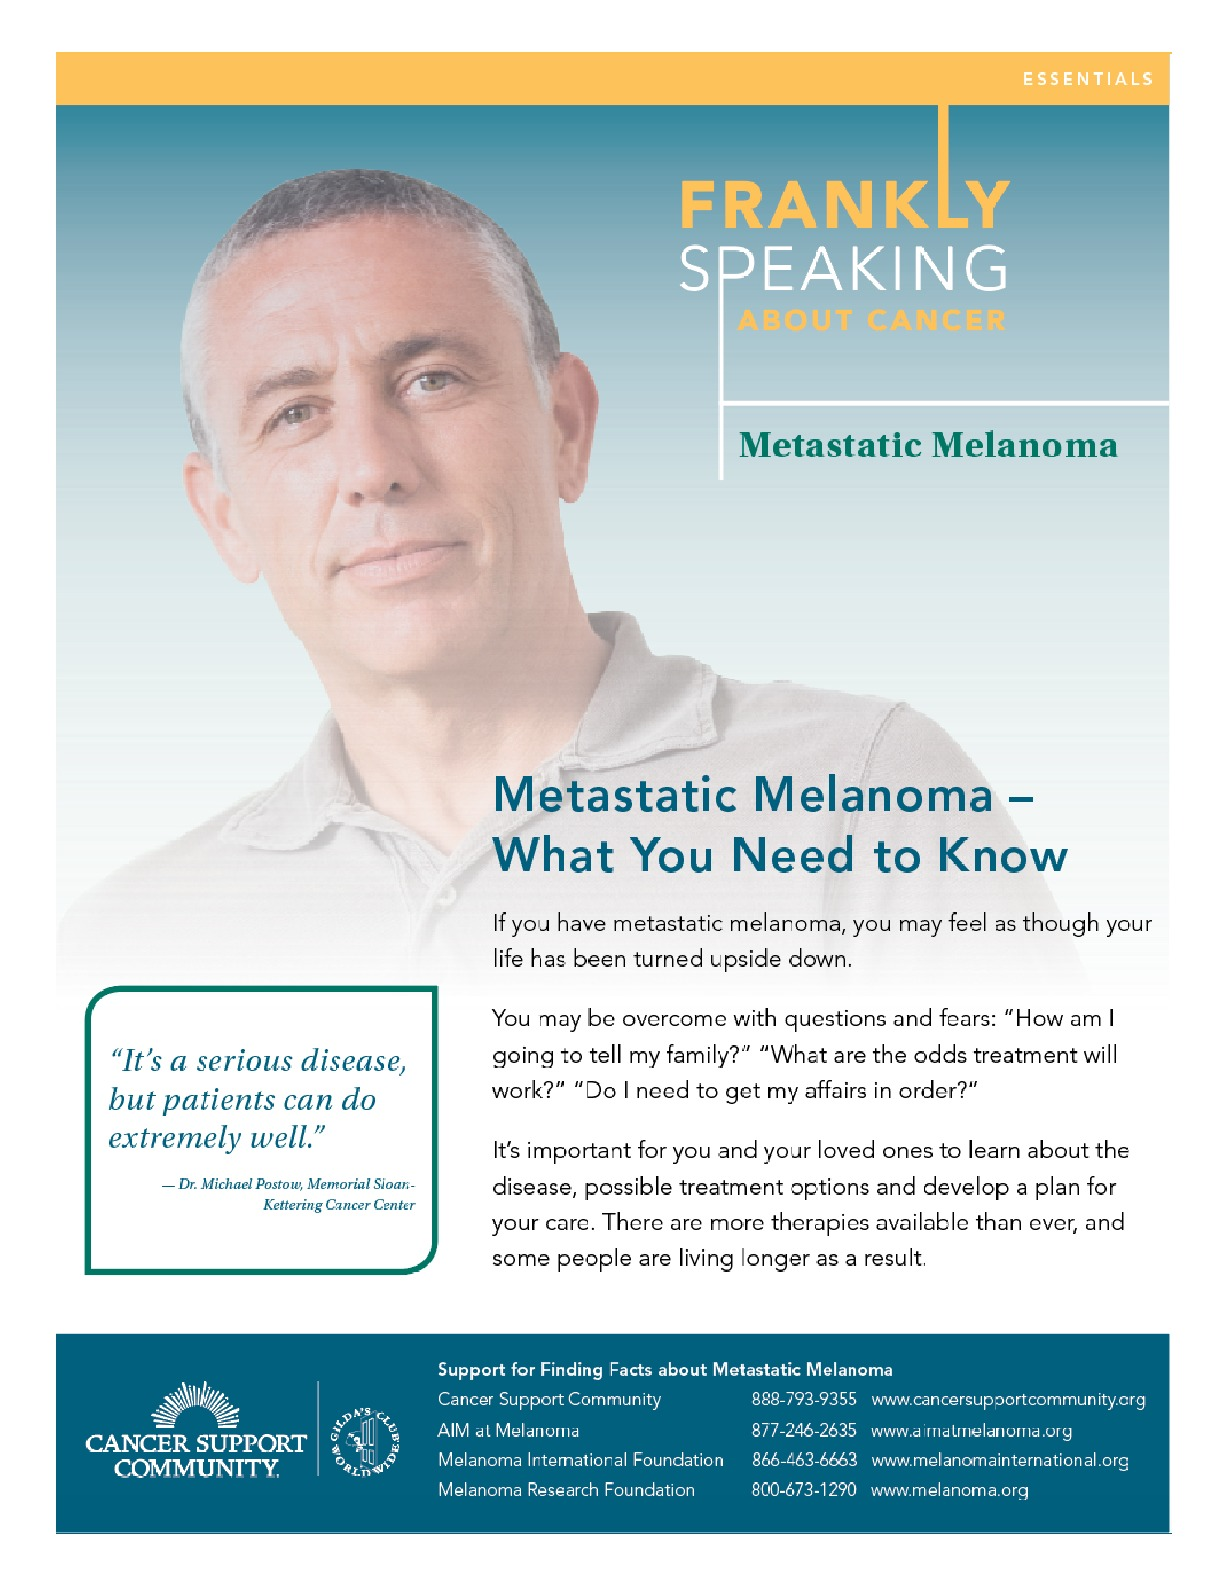 Frankly Speaking About Cancer: Metastatic Melanoma